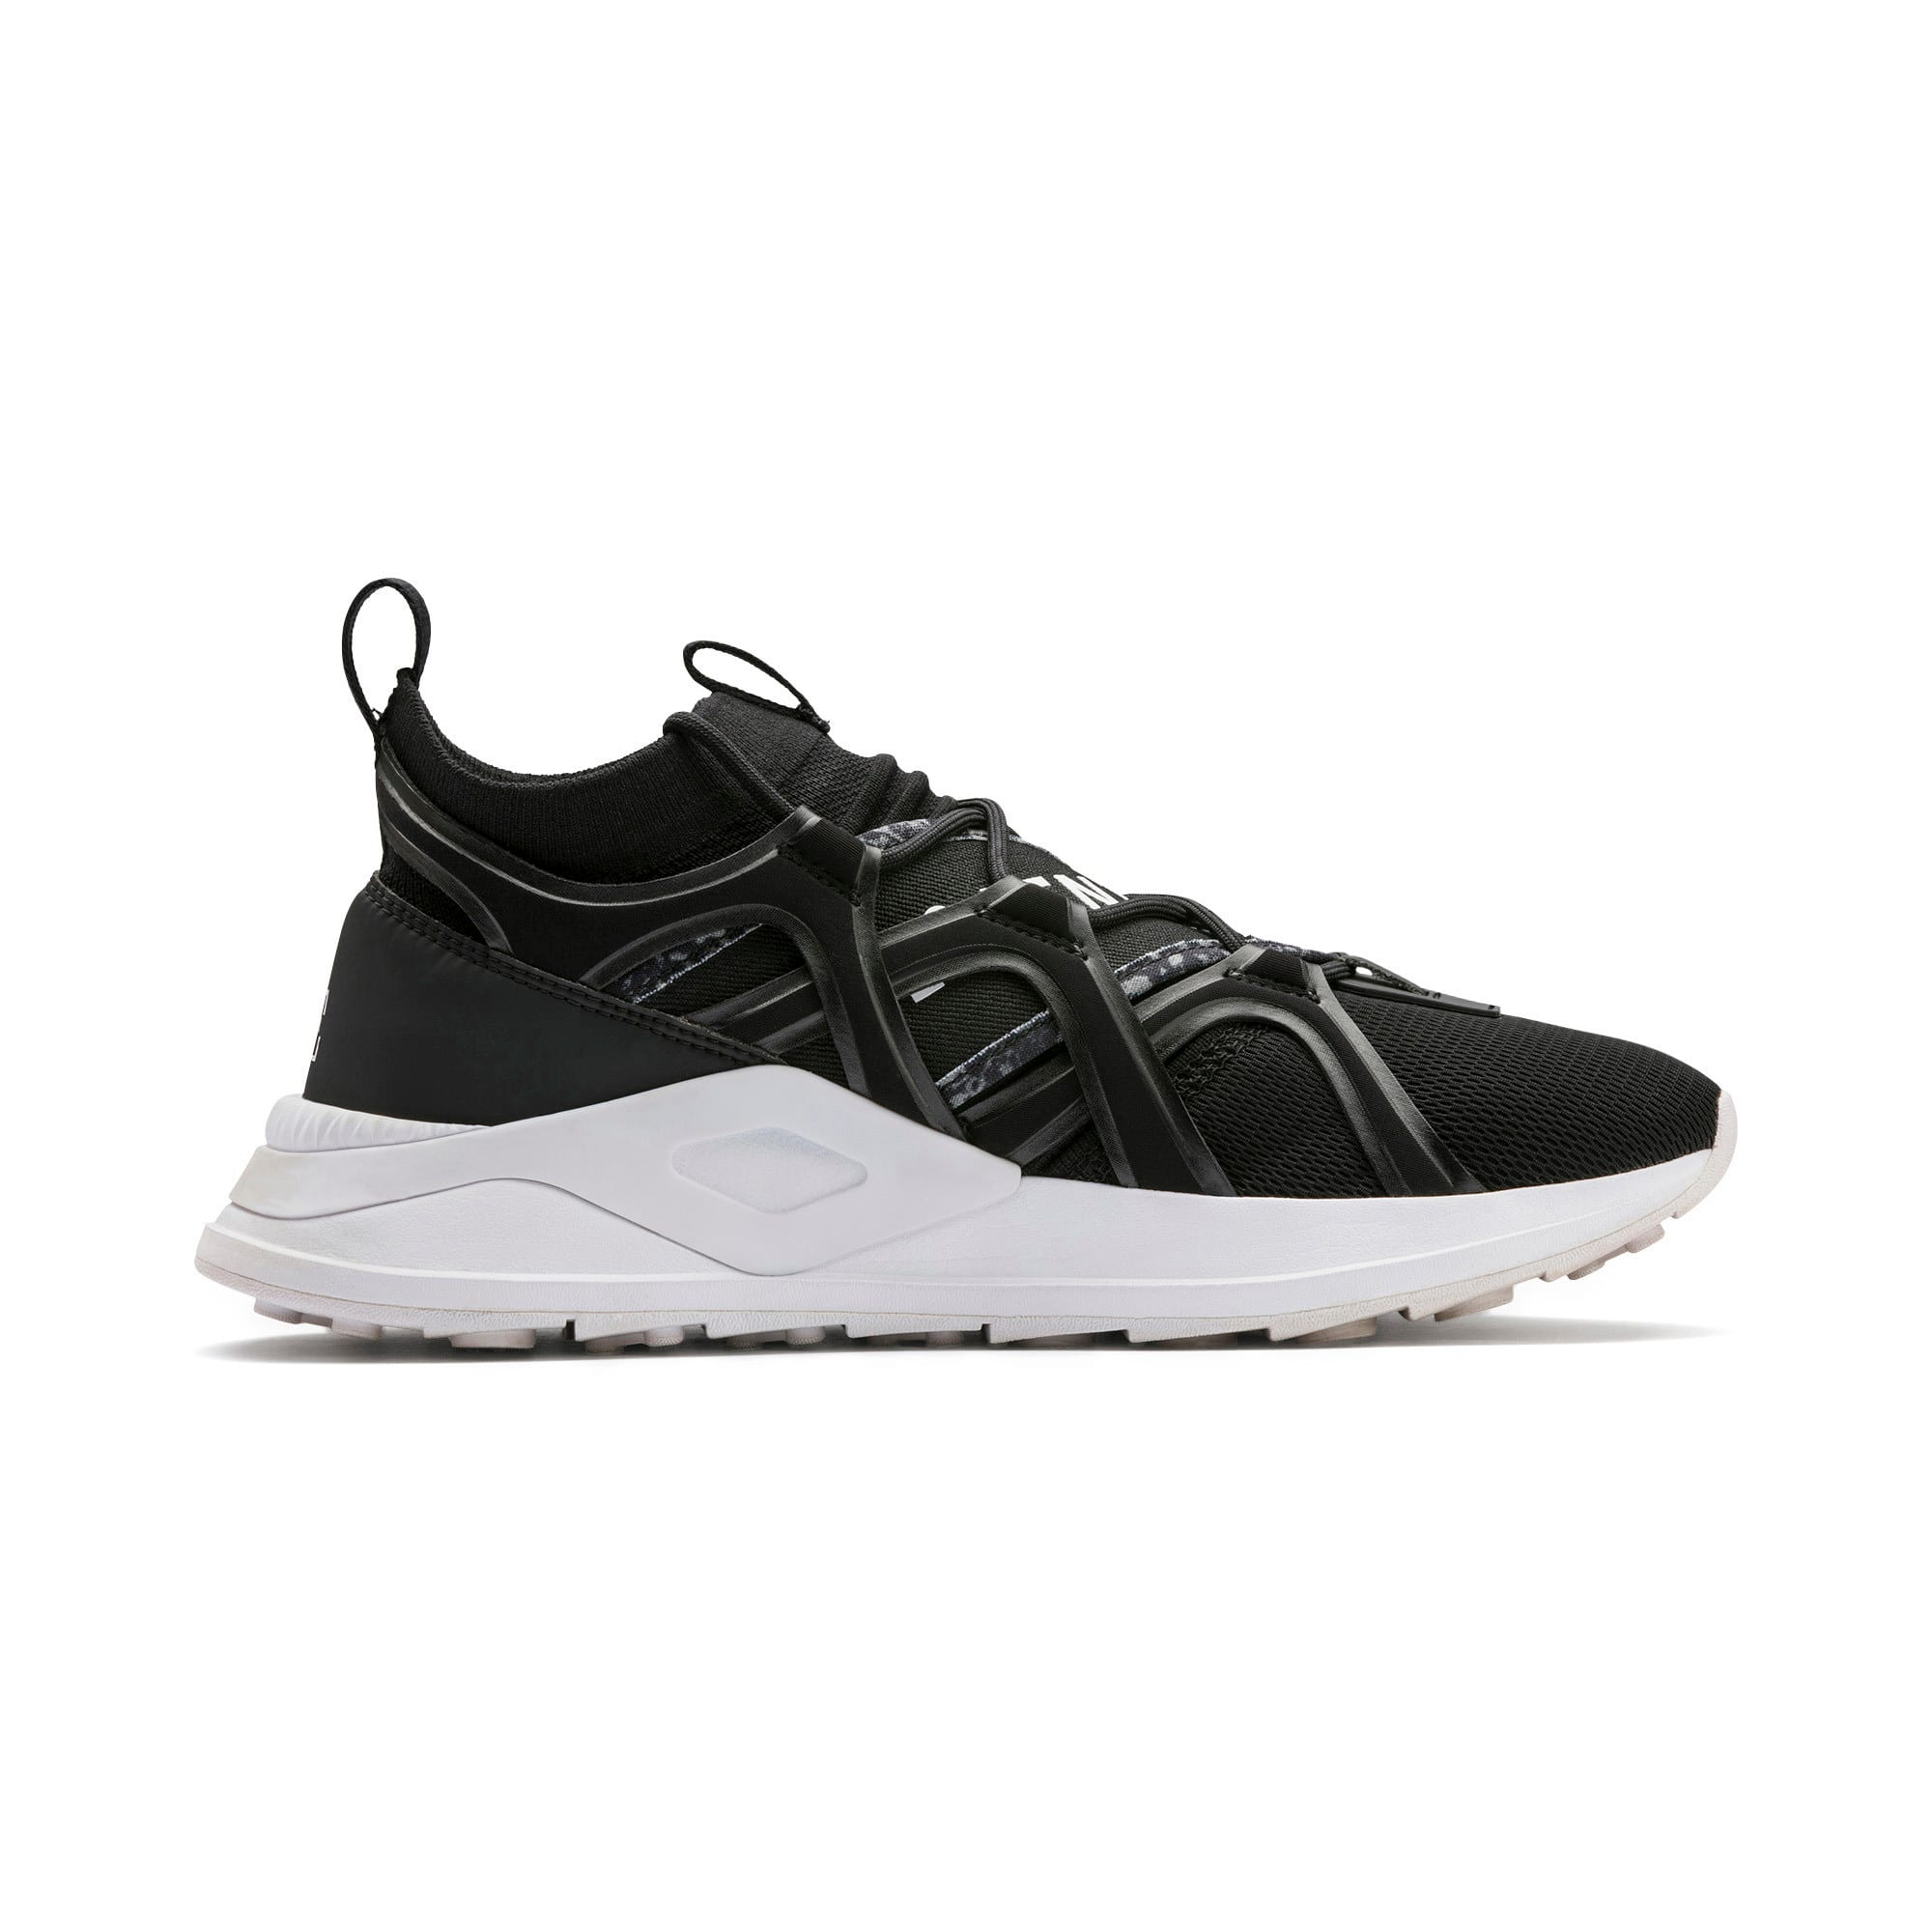 Thumbnail 7 of PUMA x LES BENJAMINS SHOKU Sneakers, Puma Black, medium